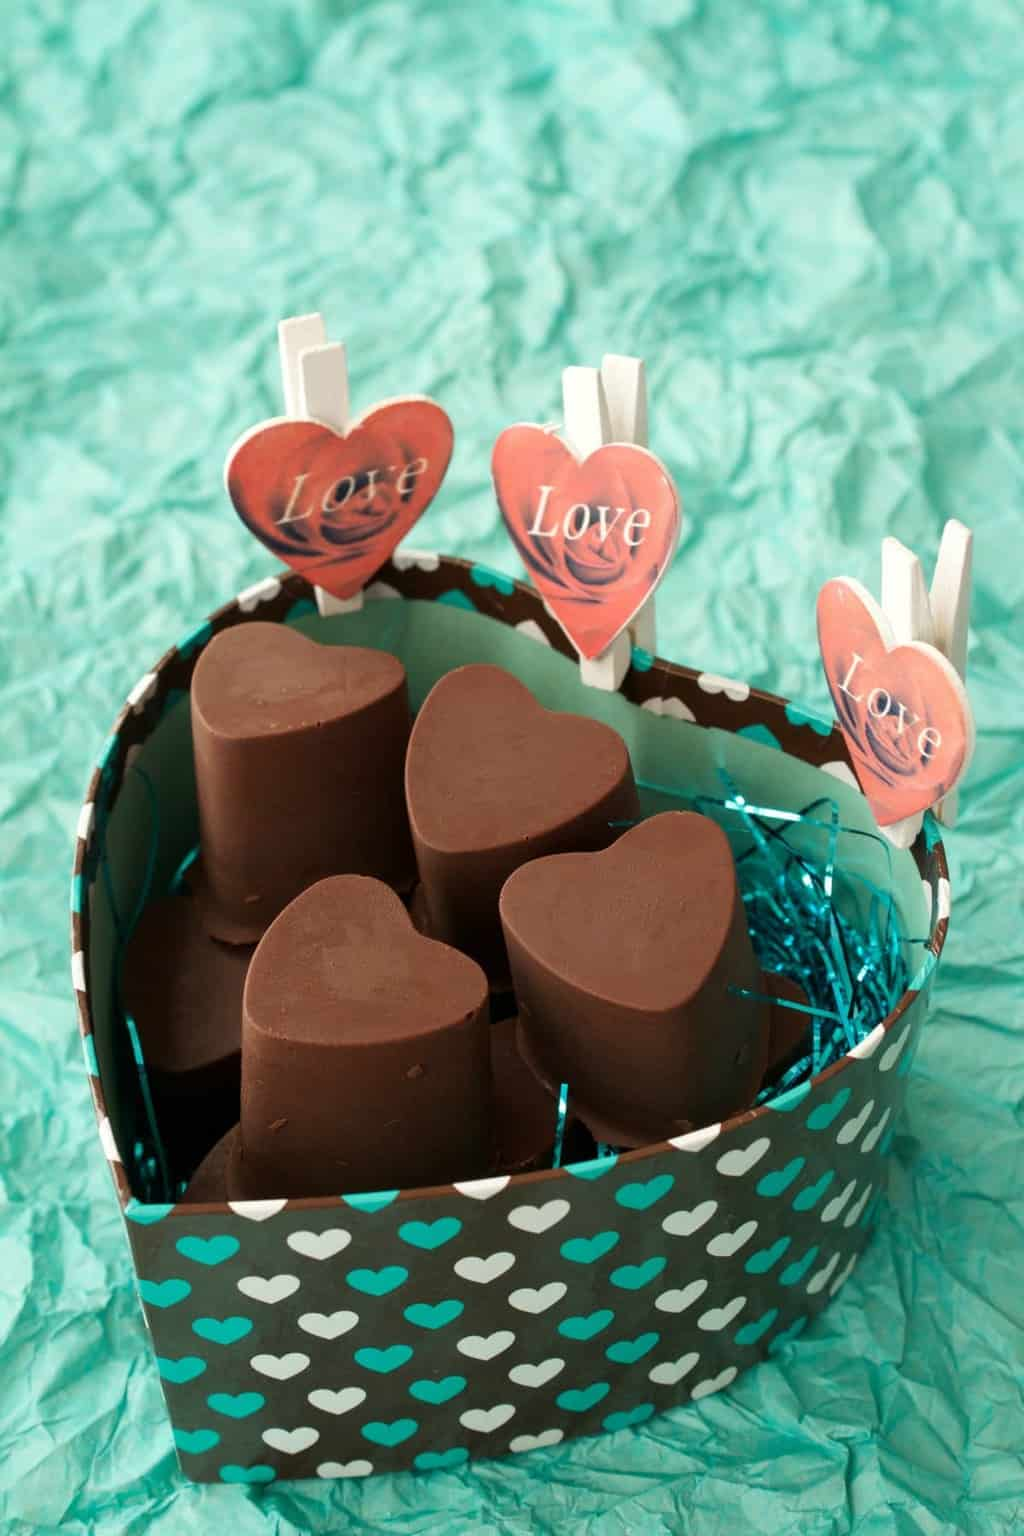 Heart-Shaped Caramel Fudge Vegan Chocolates. Perfect for a Romantic Occasion! #vegan #lovingitvegan #valentines #romantic #dessert #chocolates